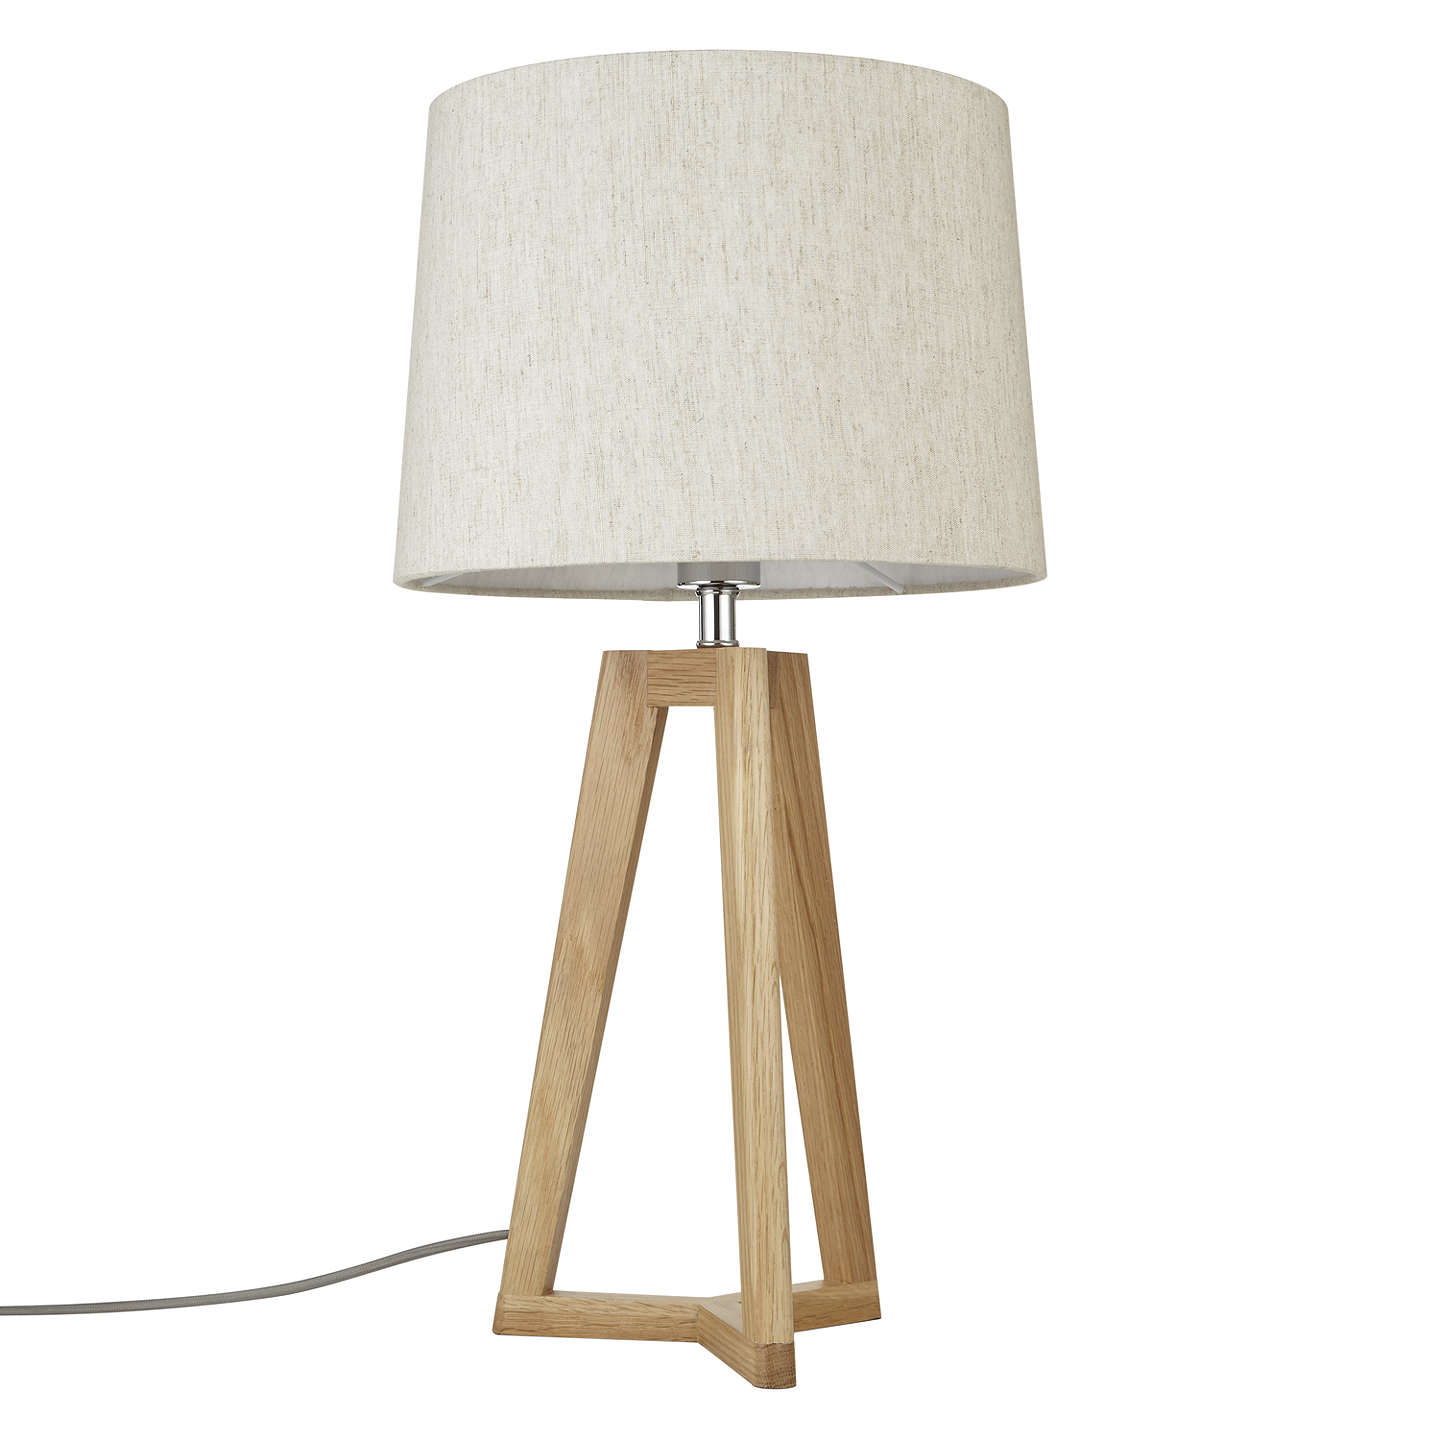 BuyJohn Lewis Brace Table Lamp, FSC-Certified (Oak) Online at johnlewis.com